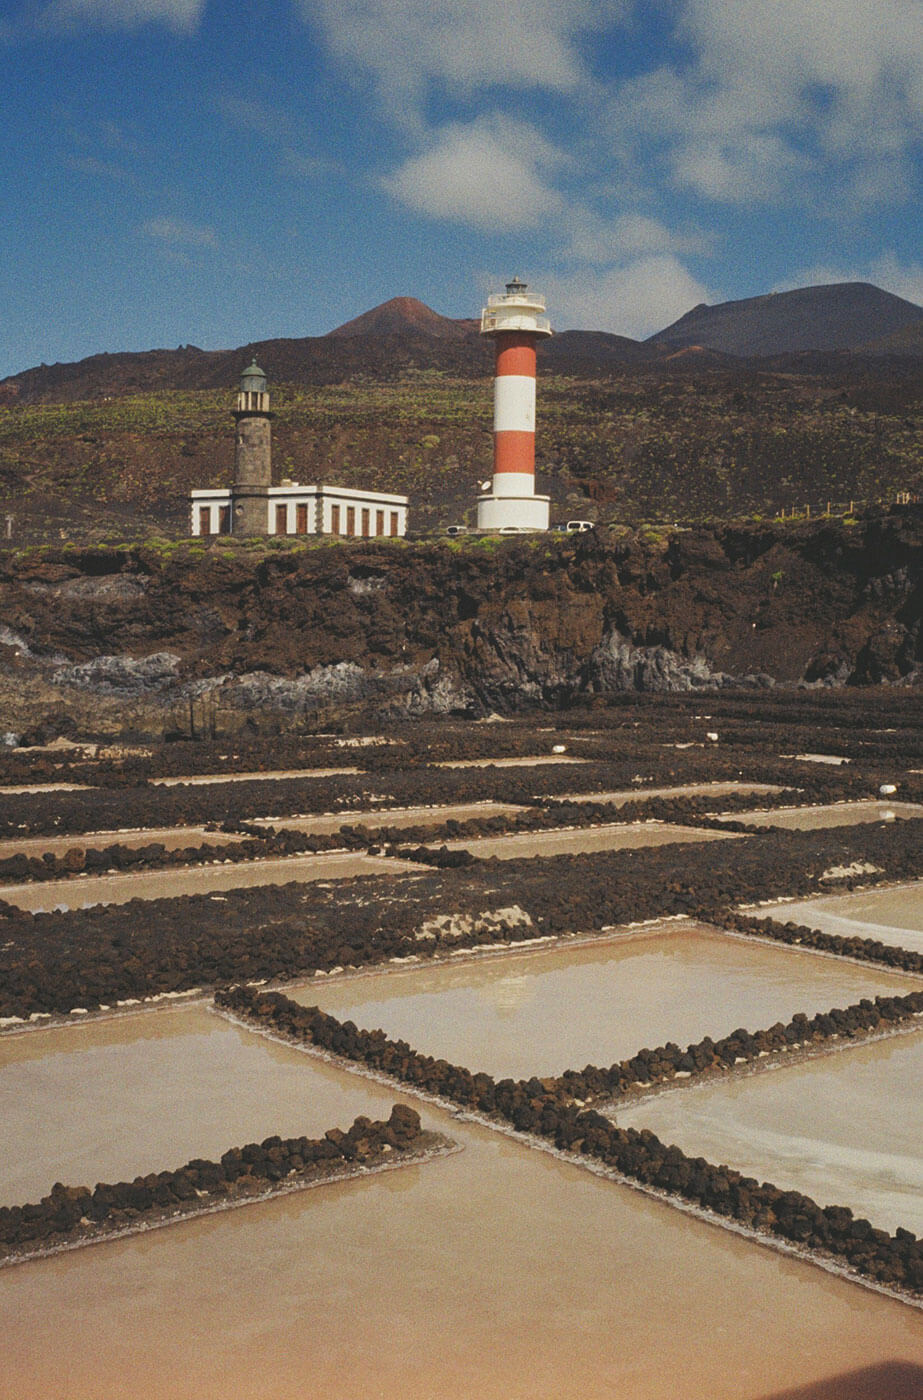 LaPalmaLighthouse@2x.jpg